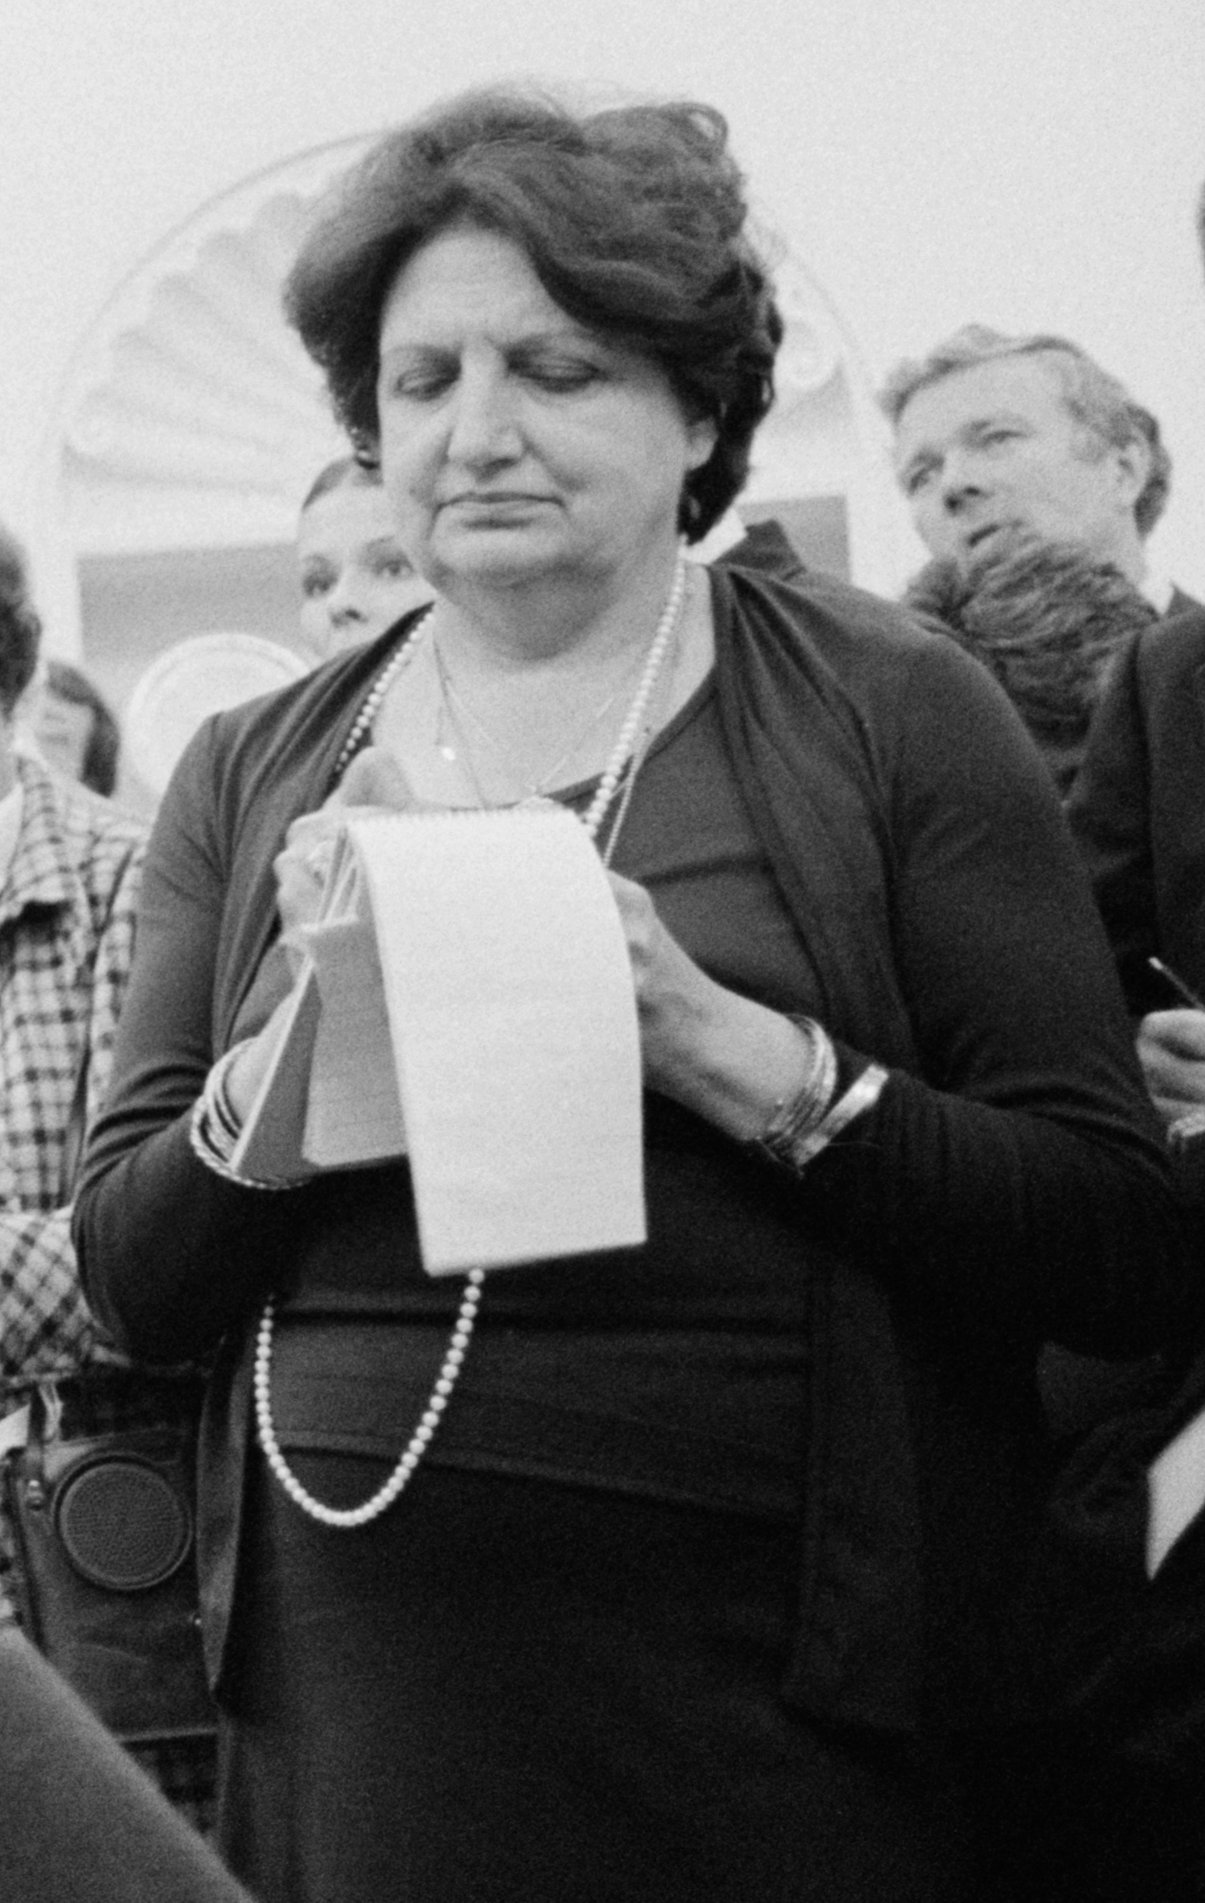 Helen Thomas back in the day